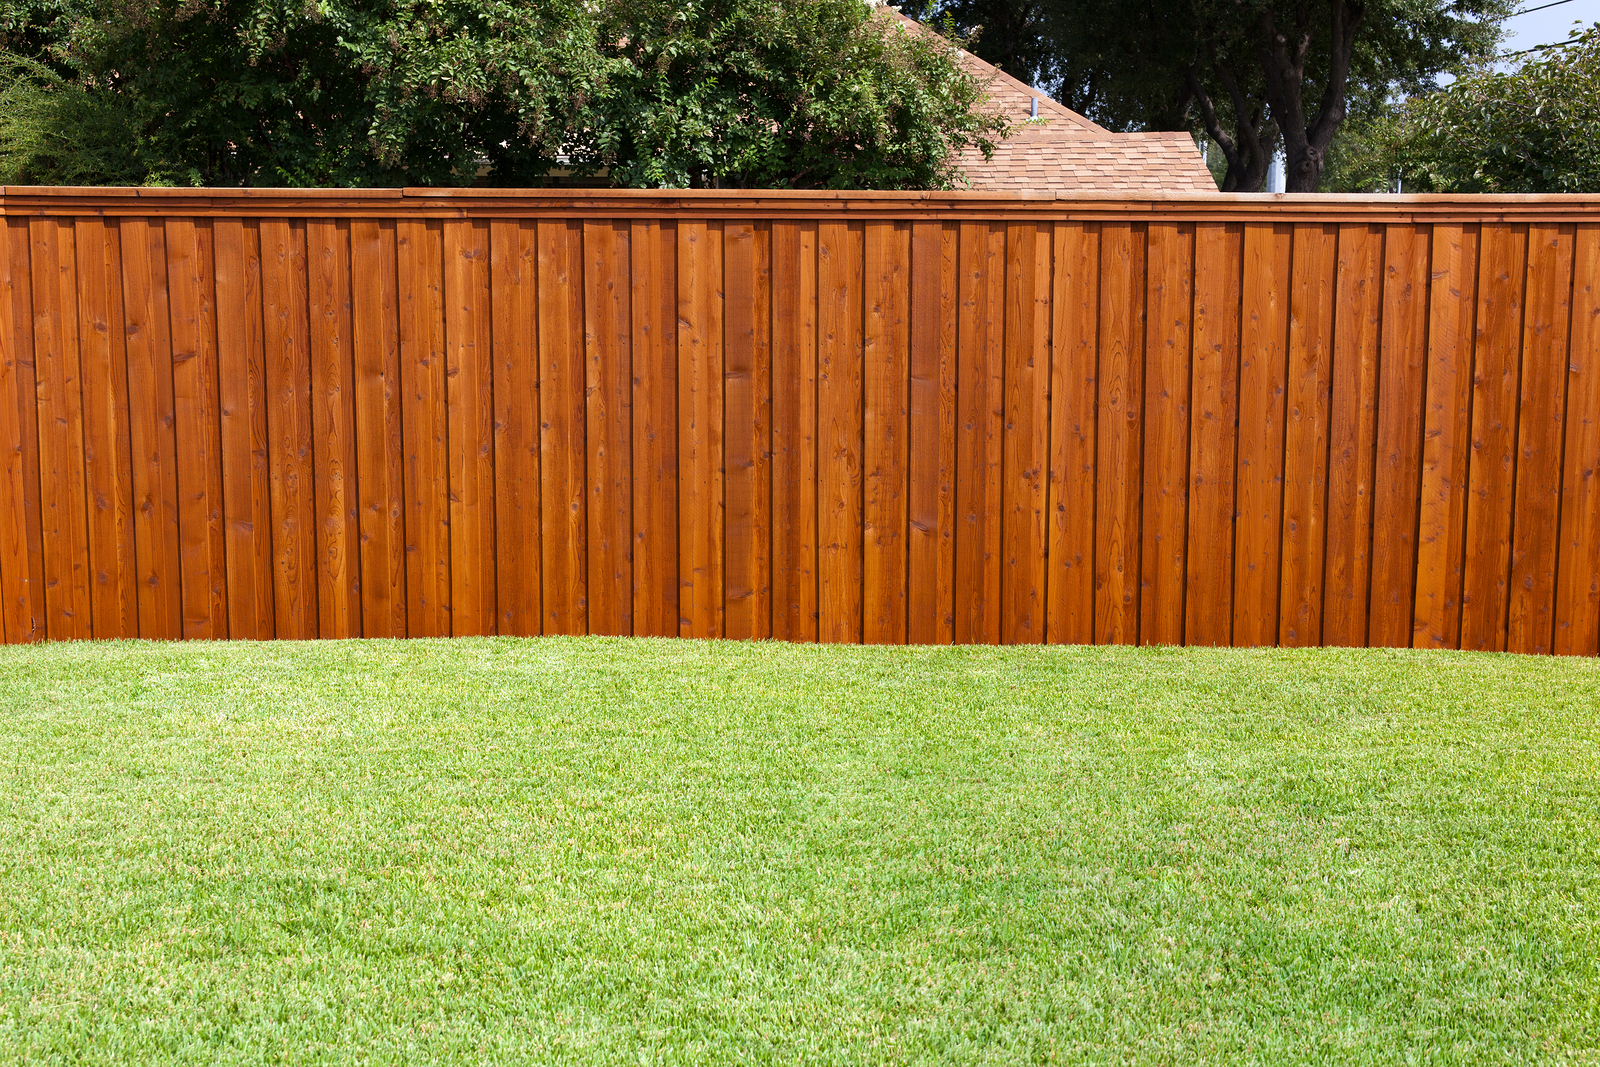 6 Reasons To Install A Fence Around Your Backyard Themocracy regarding Pricing For Fencing For A Backyard